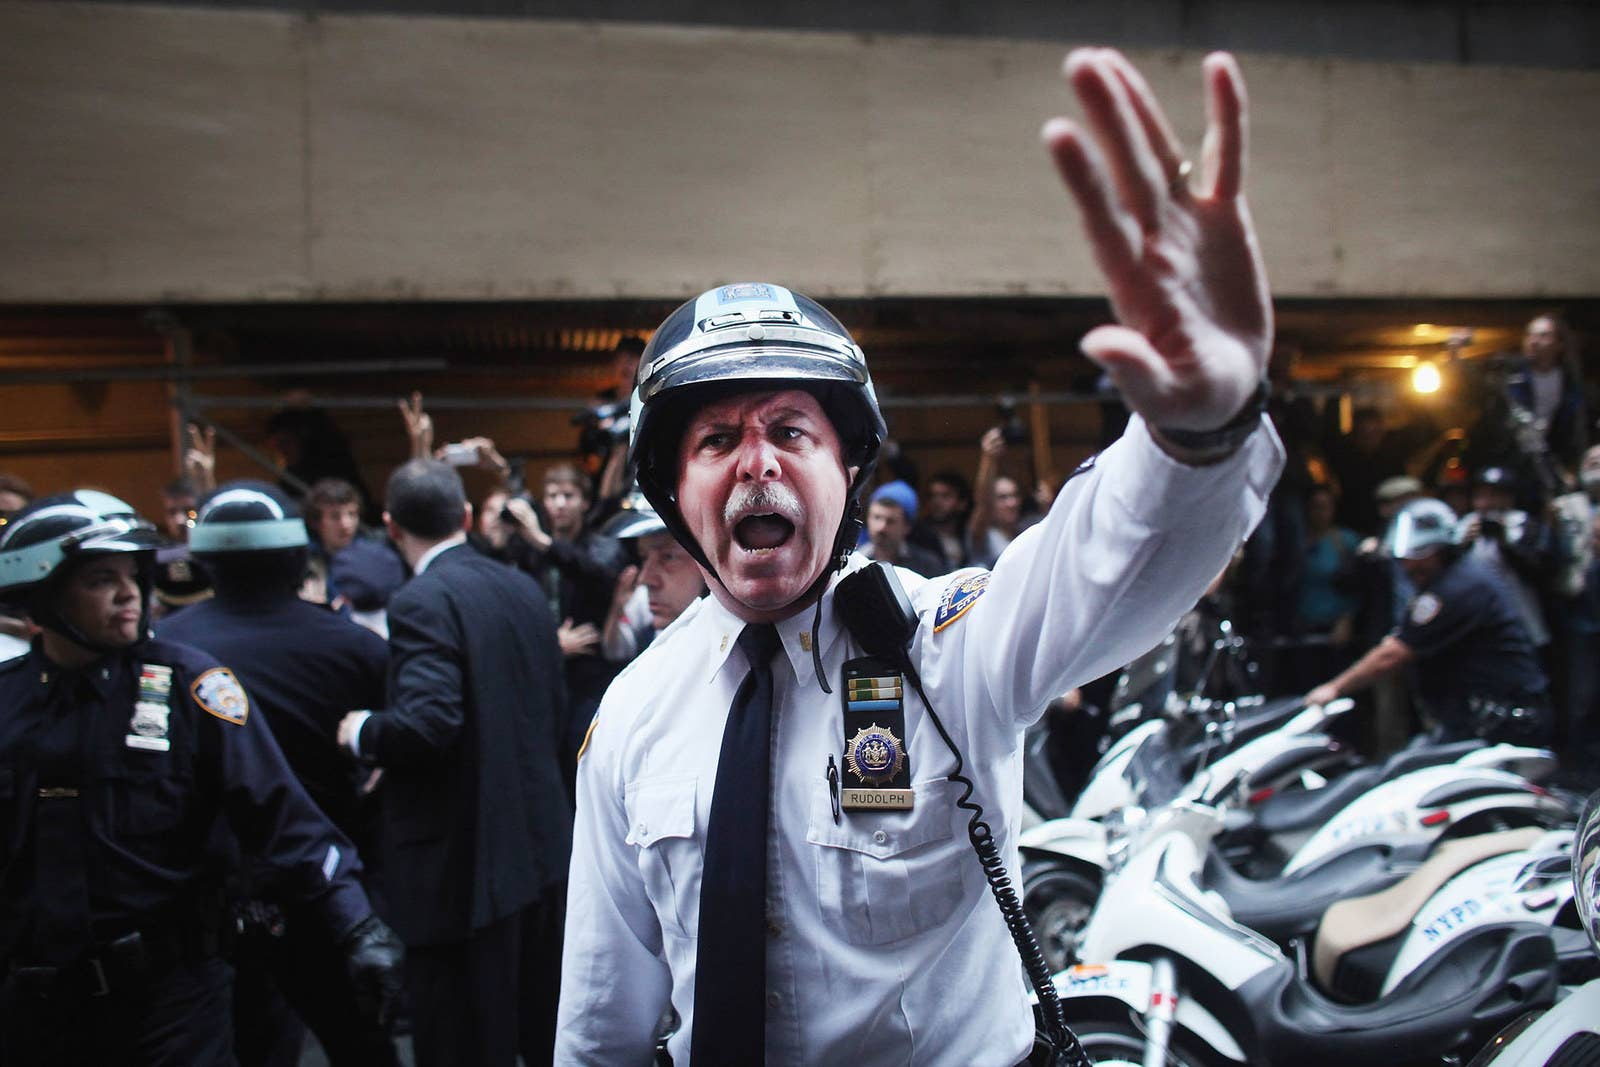 Police scuffle with protesters marching through the streets of the Financial District on Oct. 14, 2011, after the deadline for the protesters' removal from a park was postponed.